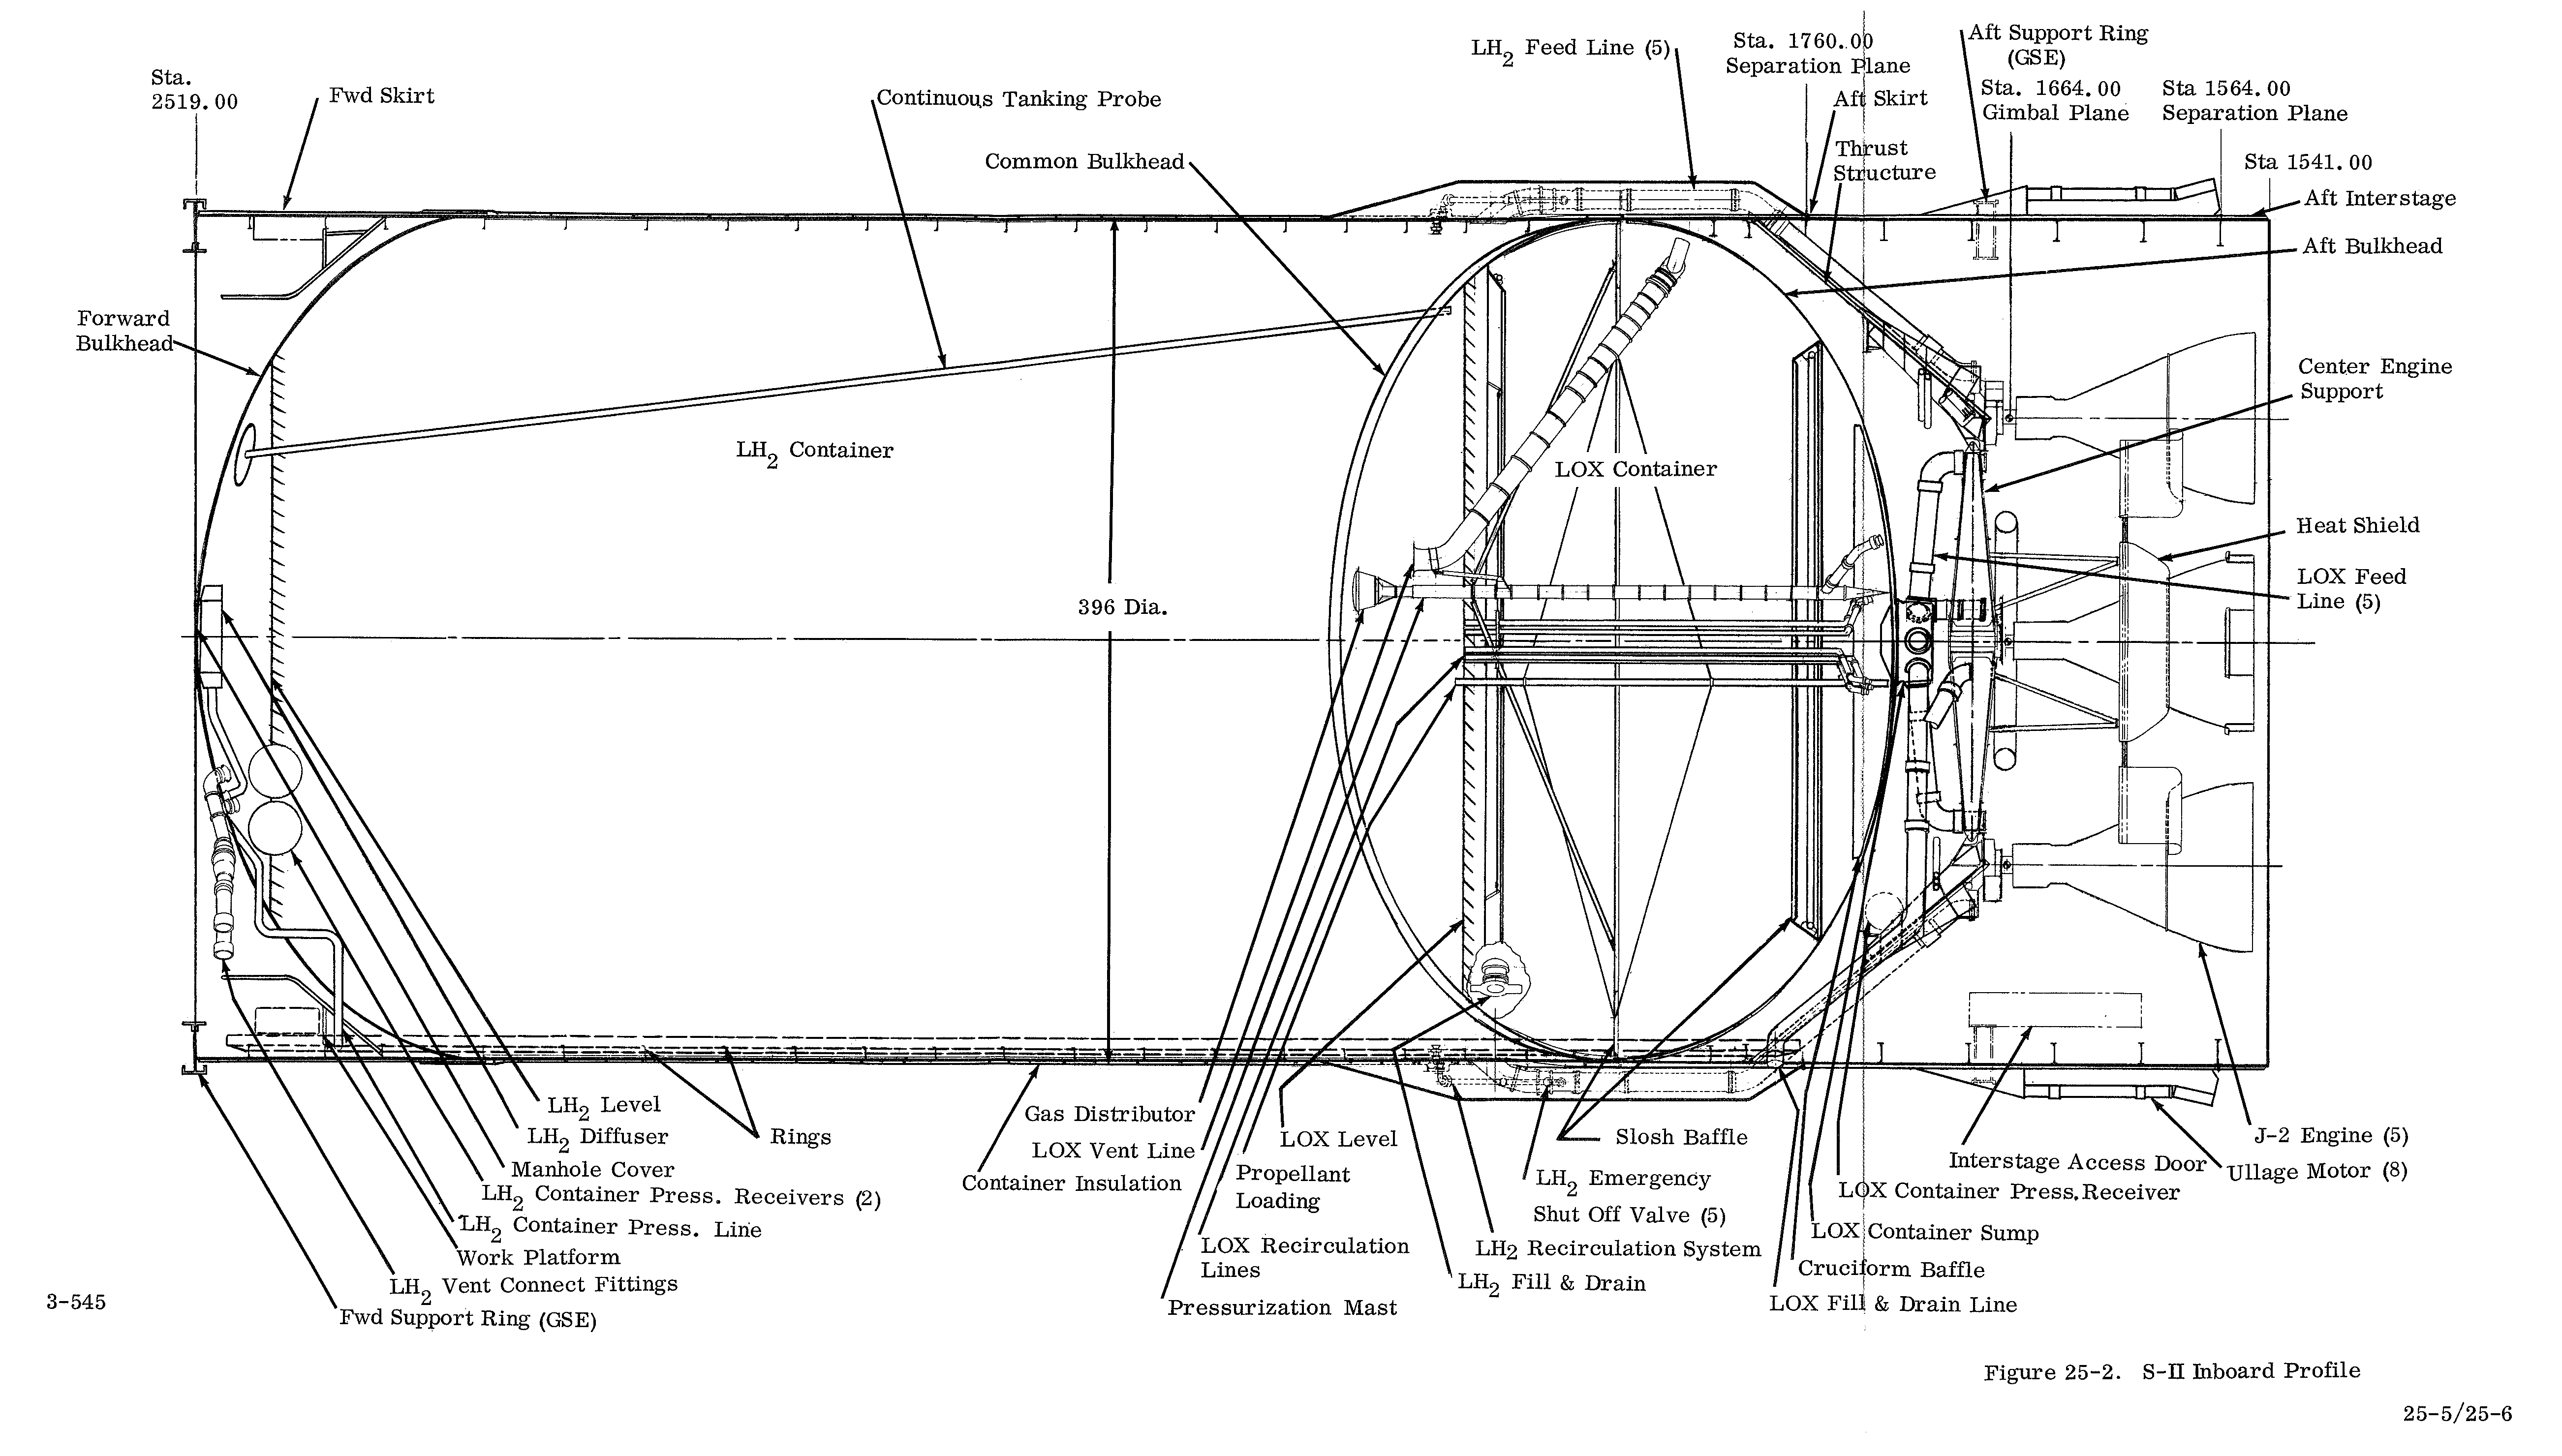 Saturn Launch Vehicle Information V F1 Engine Diagram Arrangement 1964 1969 With 260 Payload Shell